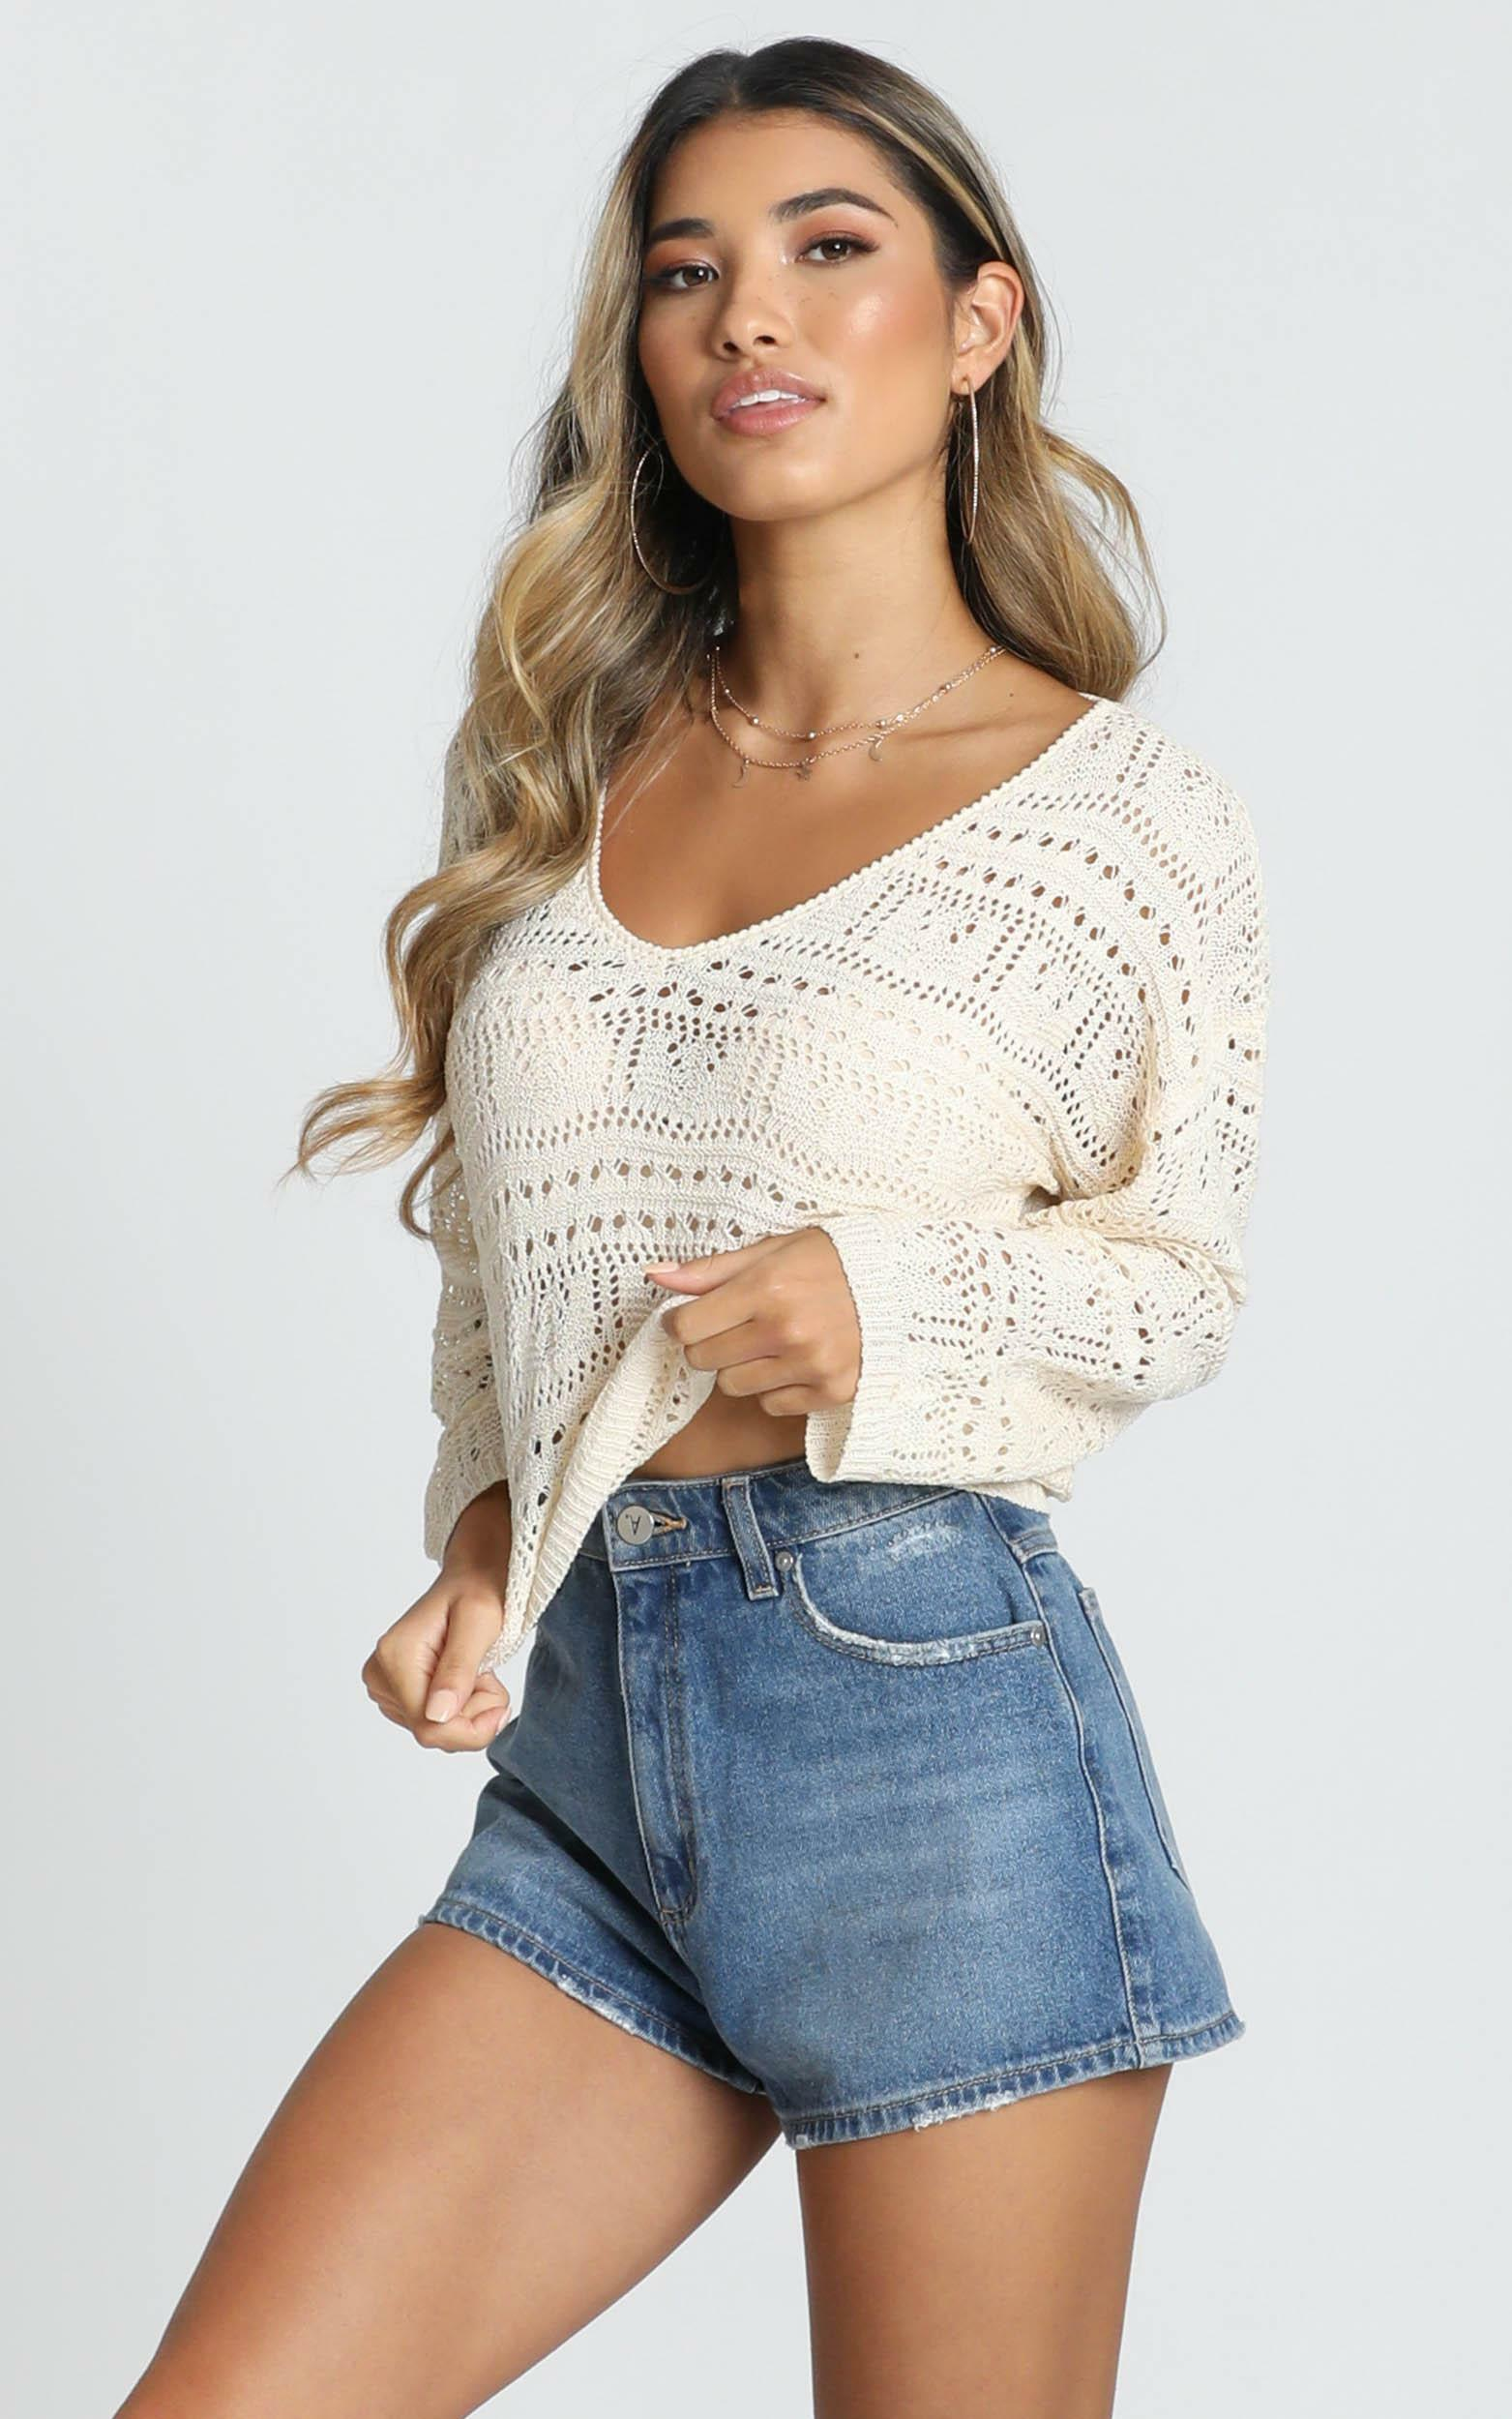 Falling Dreams Knit Top In cream crochet - 20 (XXXXL), Cream, hi-res image number null